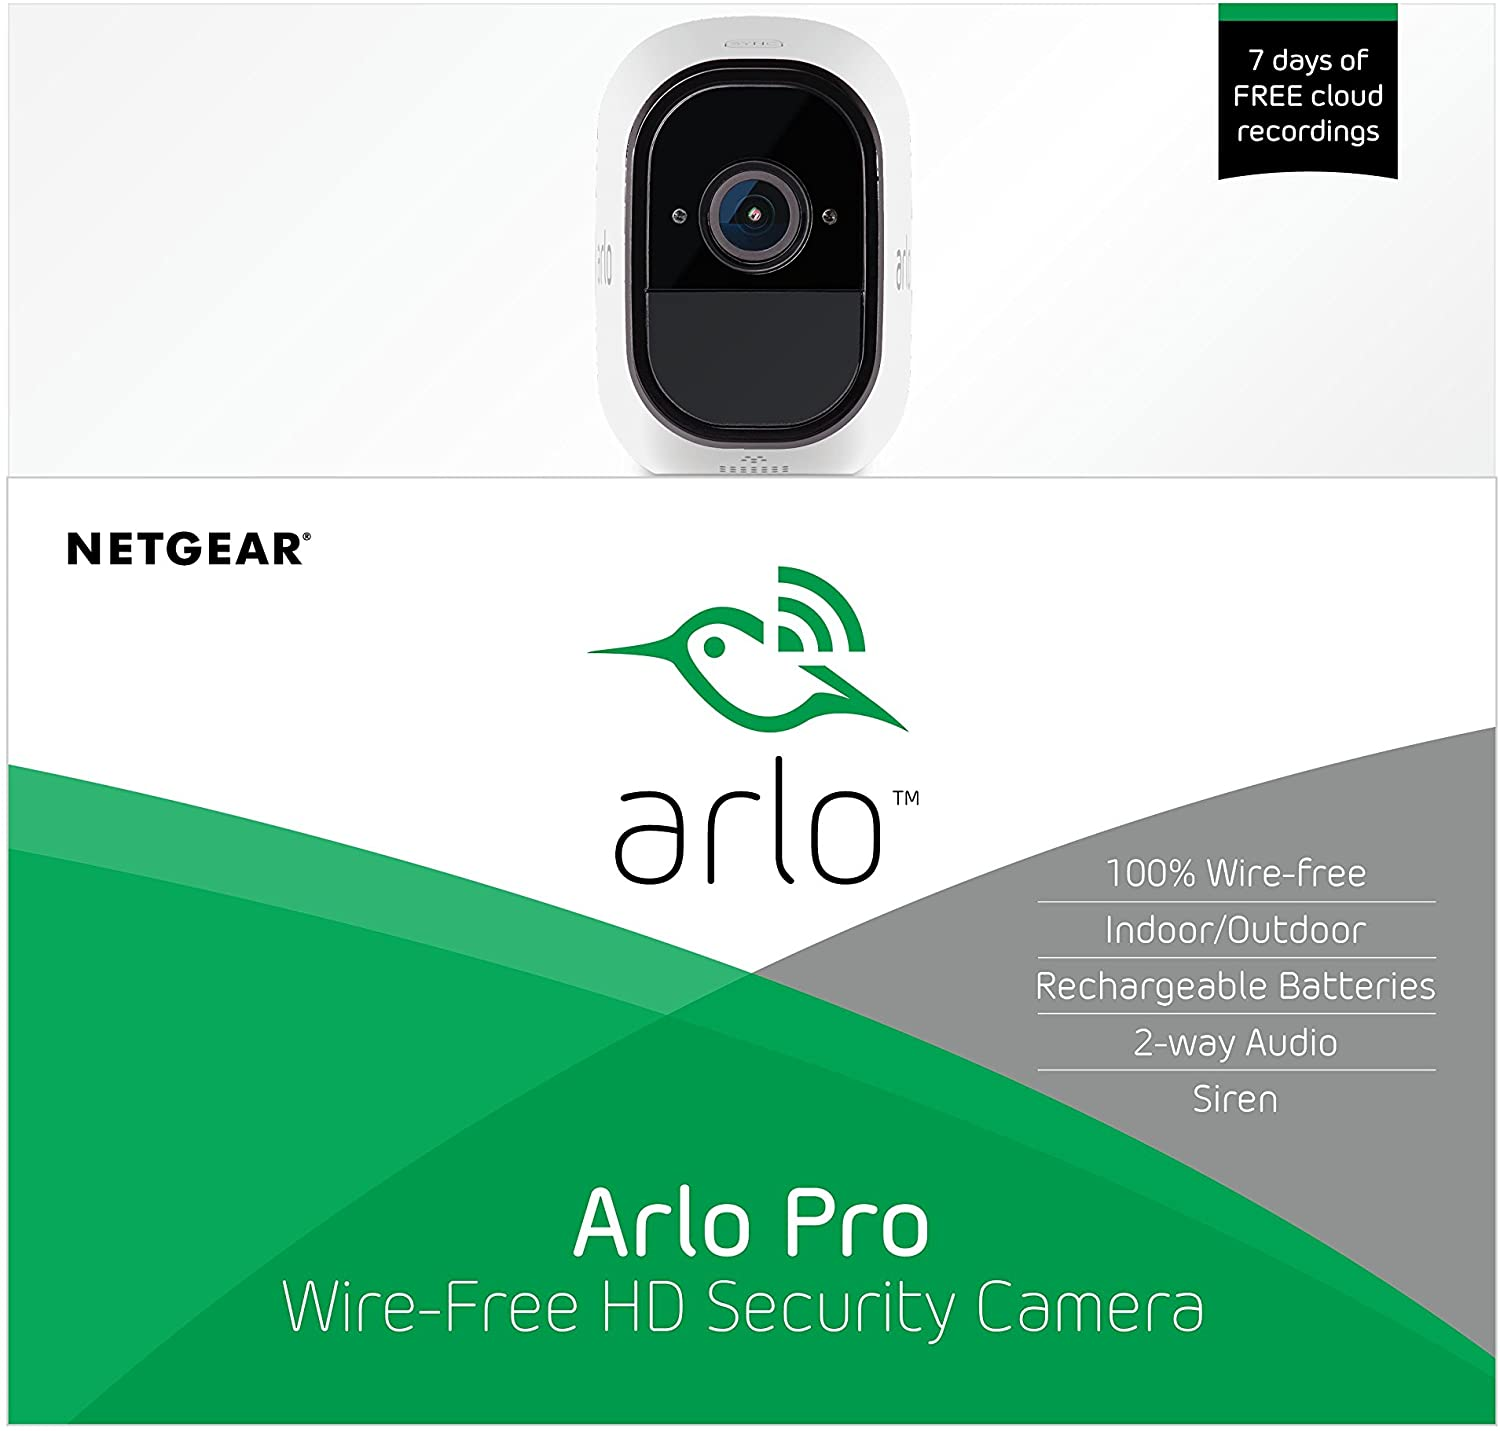 Arlo Pro Wire-Free HD Home Security 2 Camera System VMS4230-100AUS Intro